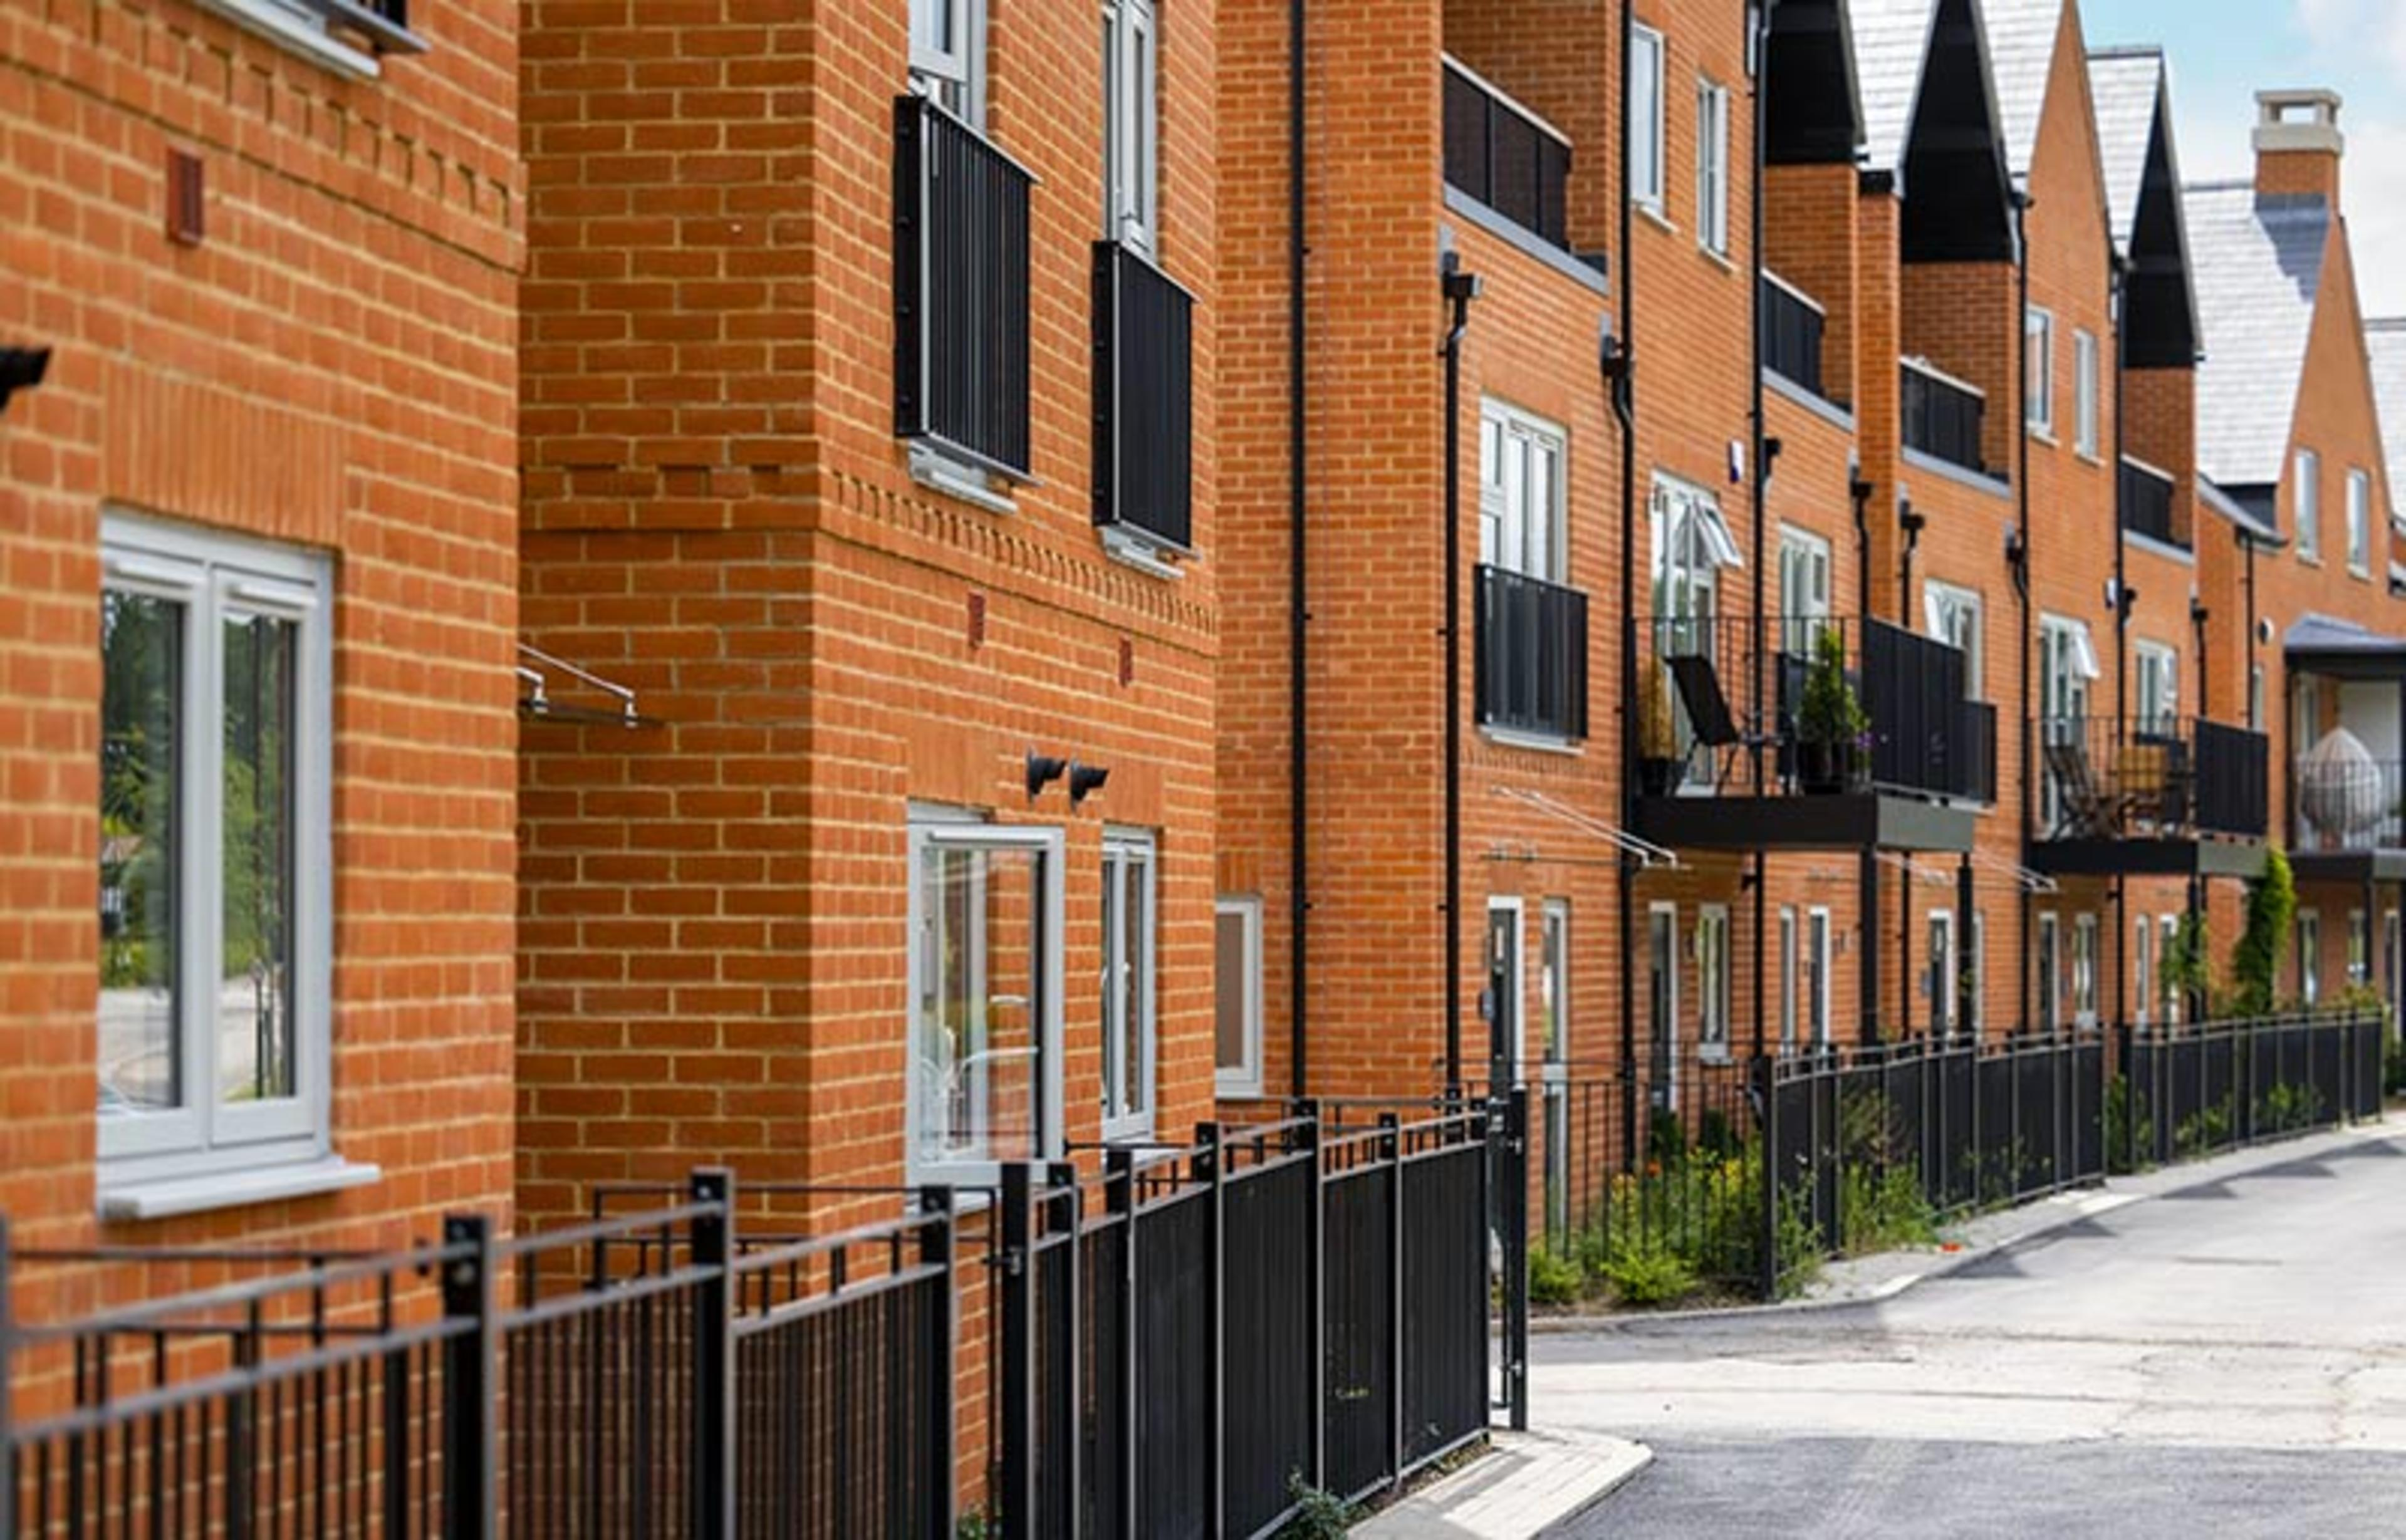 View of the rear of town houses and apartments with balconies at Kings Barton, Winchester